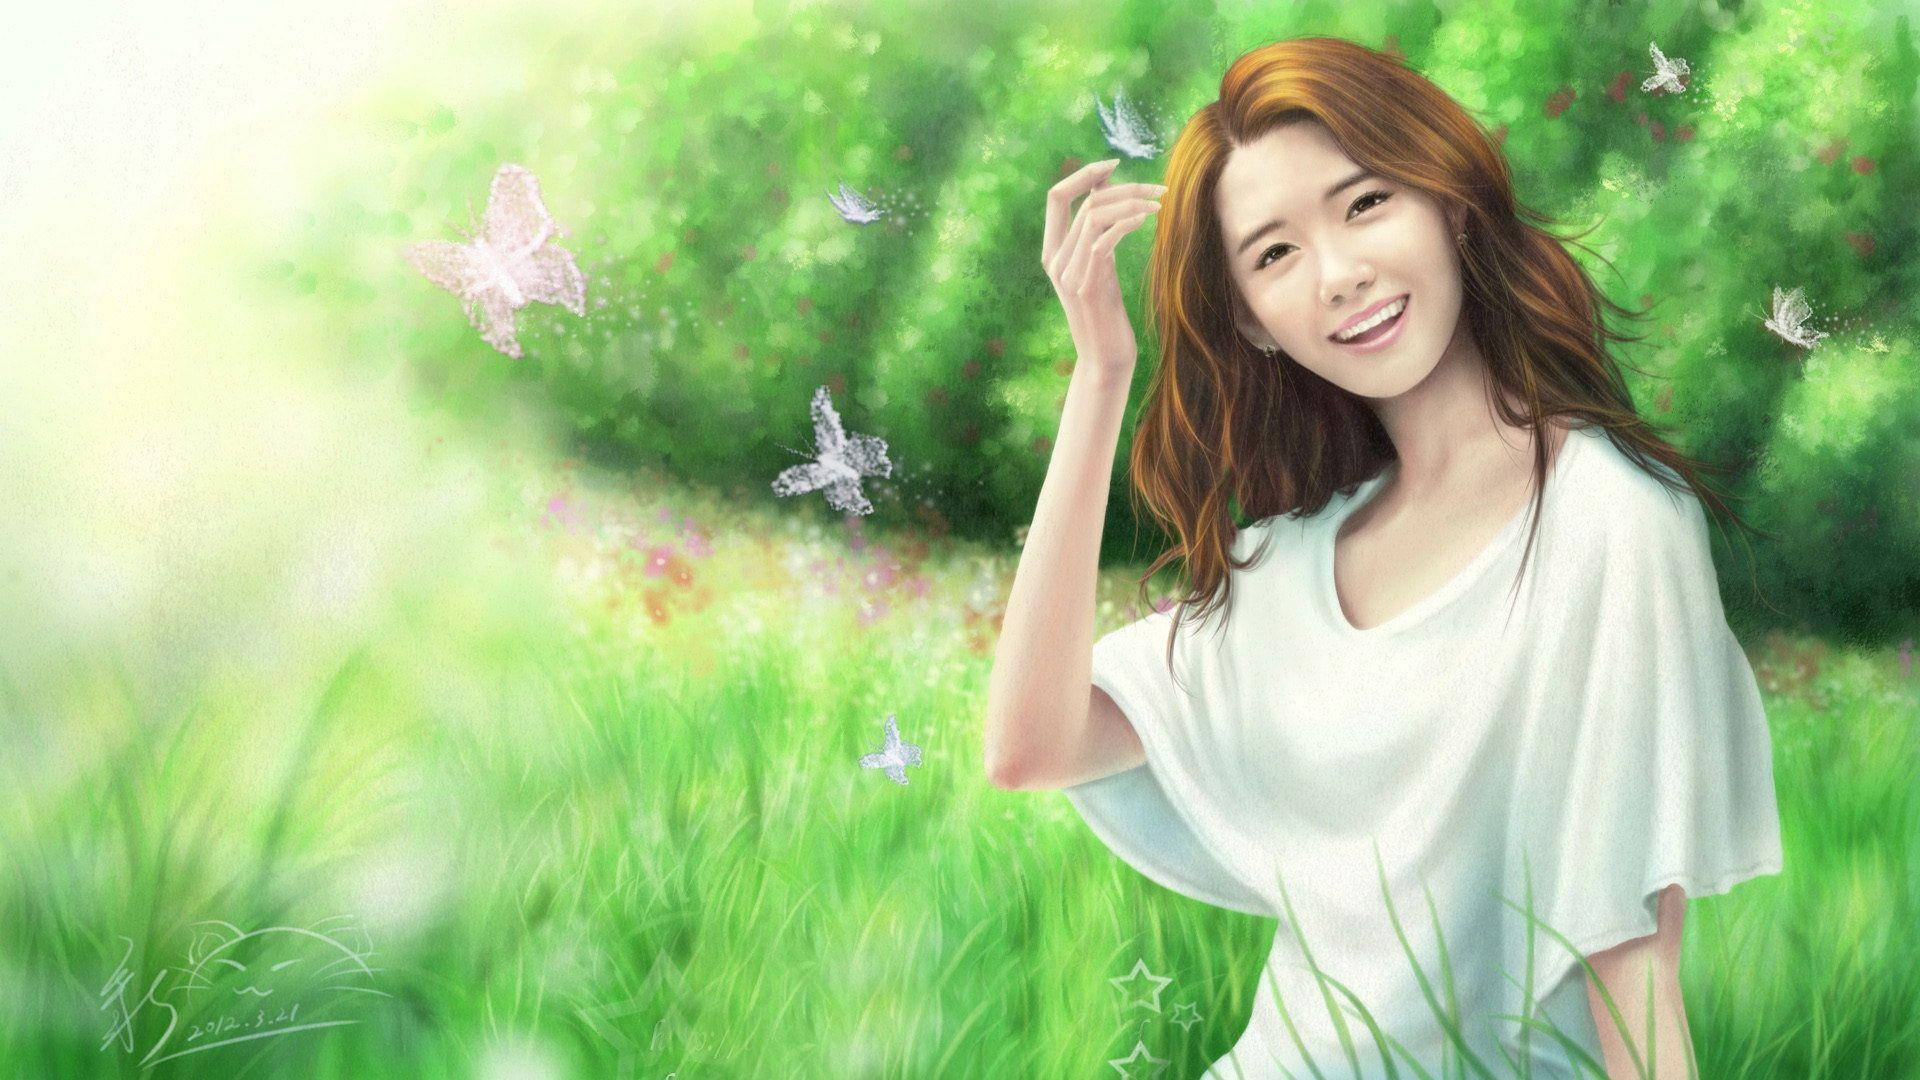 Yoona Wallpapers HD 1920x1080